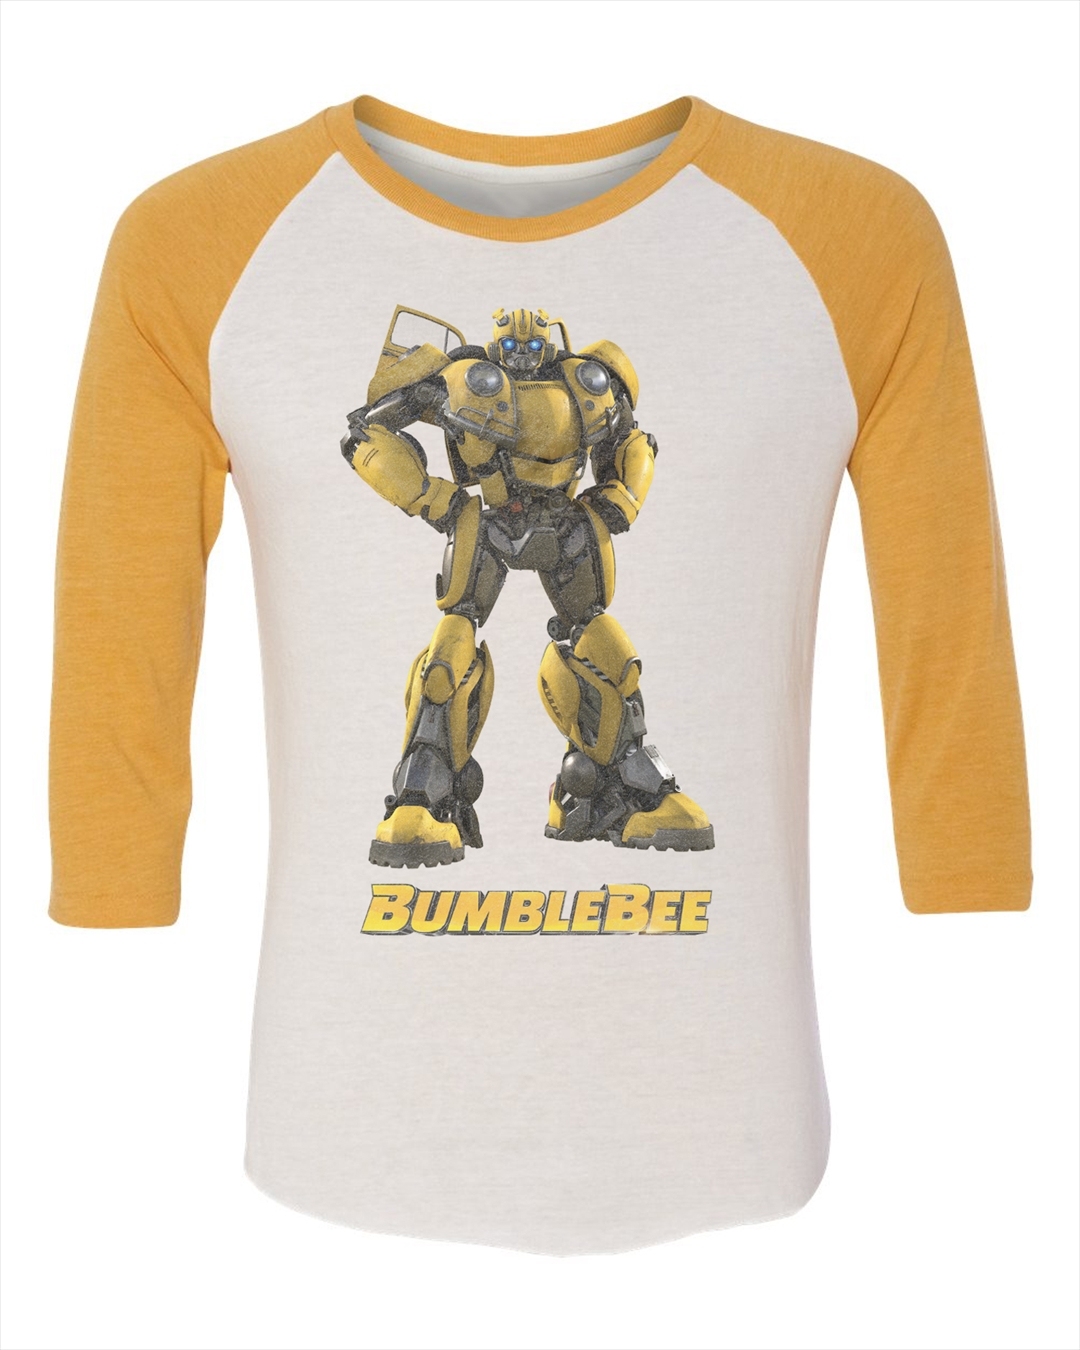 bumblebee-baseball-raglan-t-shirt-final